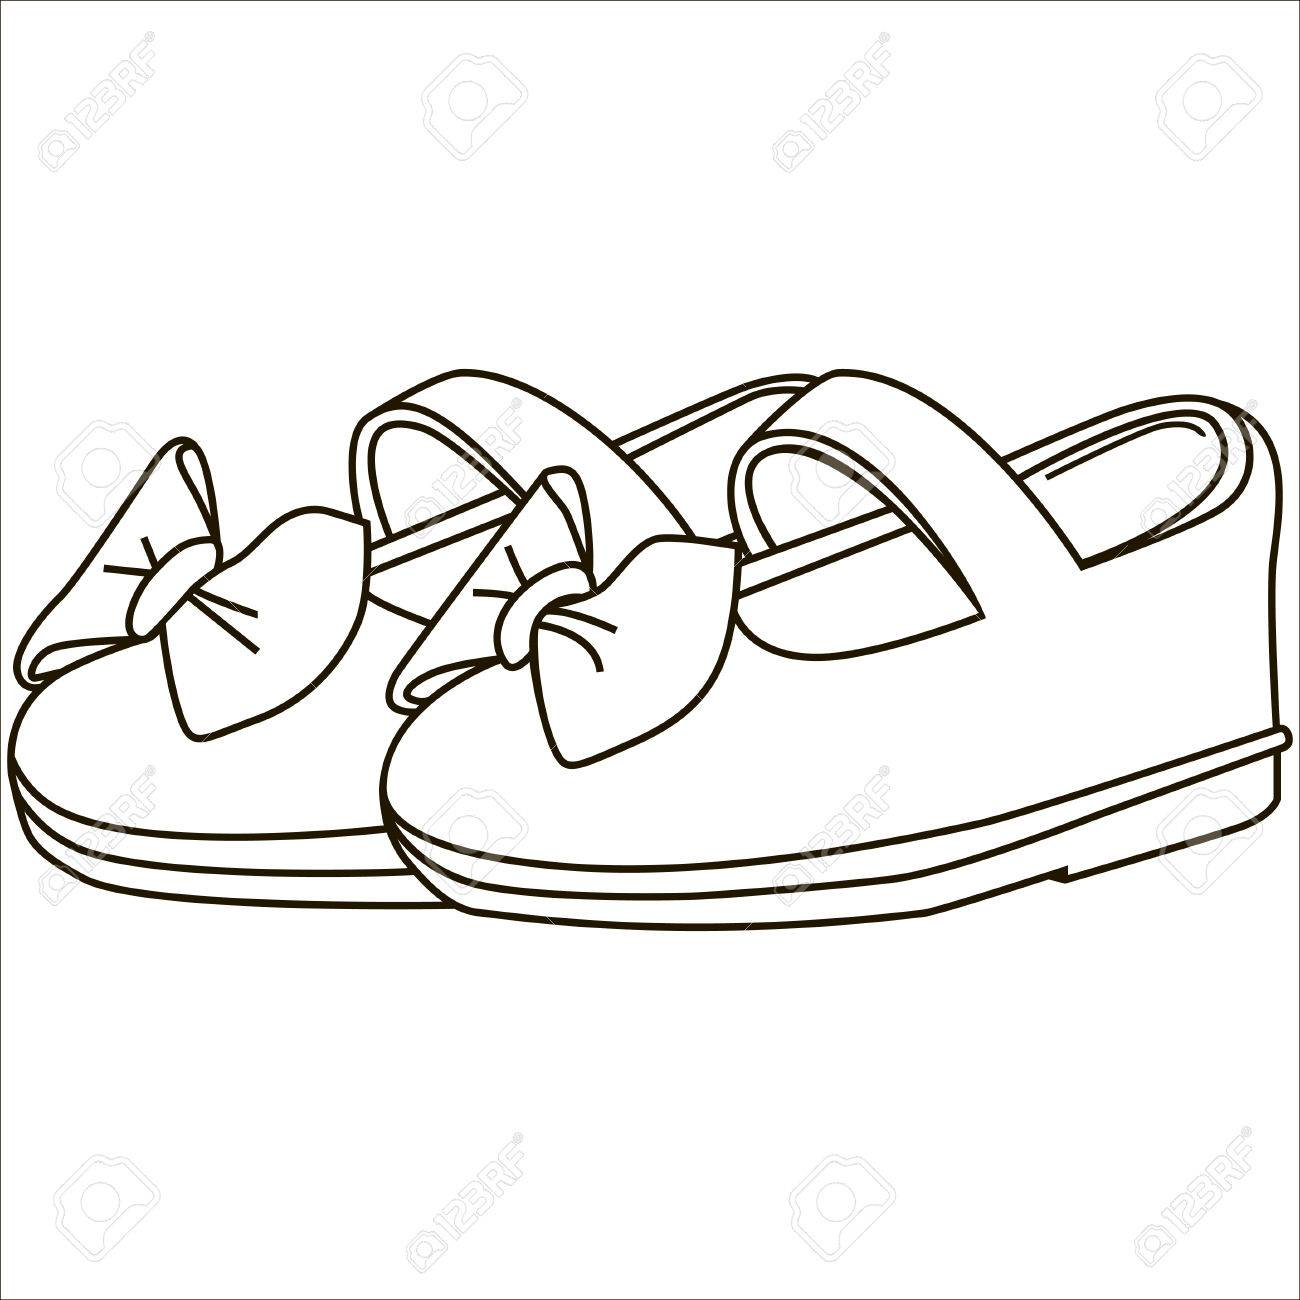 Baby Shoes Vector Isolated Illustration Black Royalty Free Cliparts Vectors And Stock Illustration Image 69113379